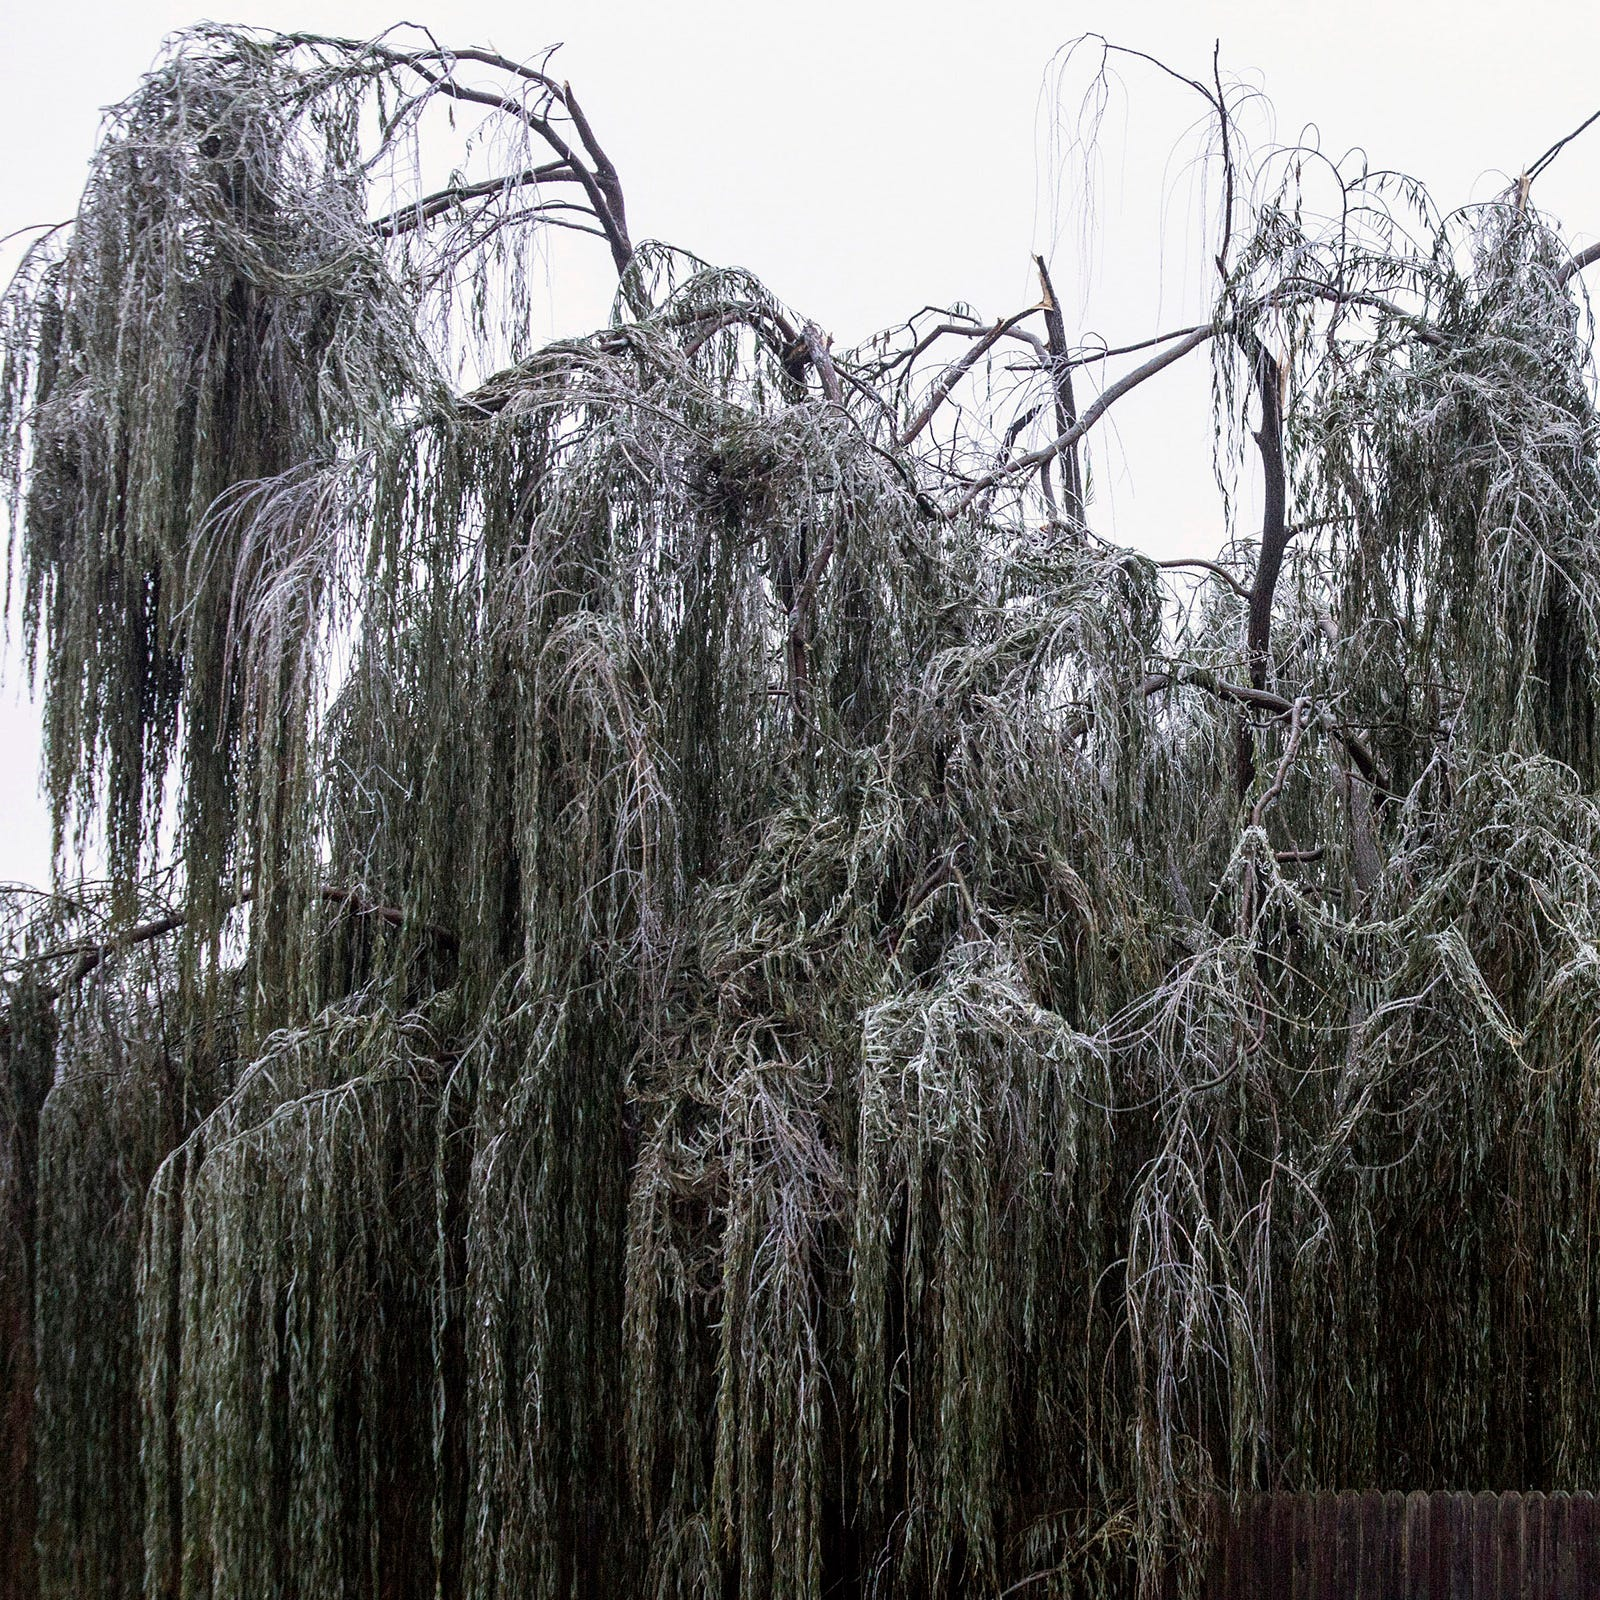 Why do trees break in Louisville during ice storms? We asked an expert